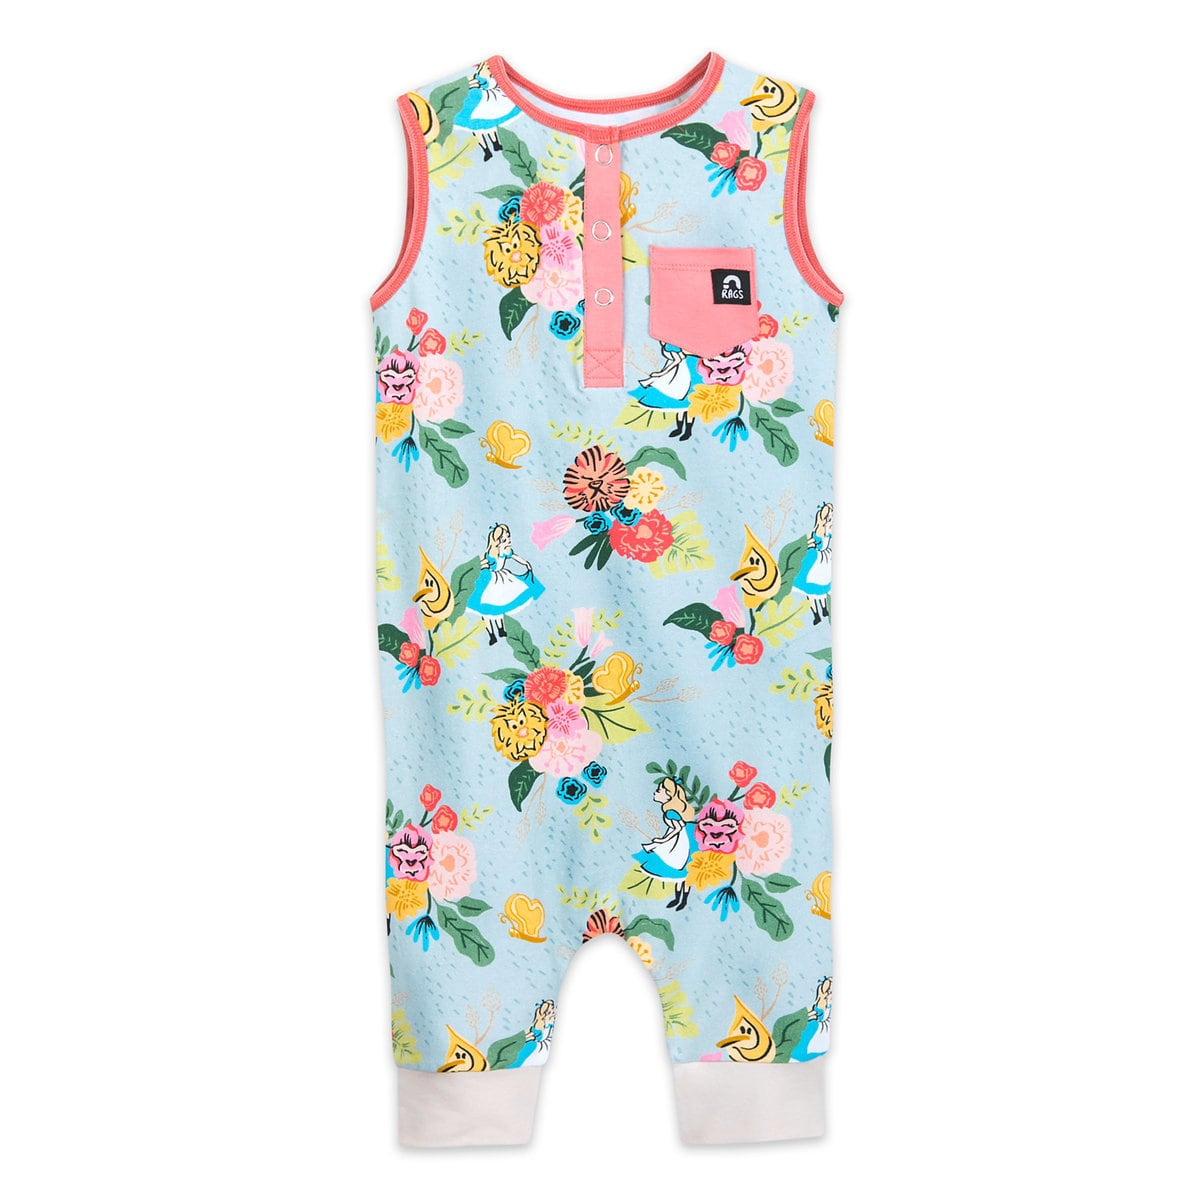 Super cute Alice in Wonderland romper for toddler girls | Top 25 Disney Gift Ideas for Toddlers featured by top US Disney blogger, Marcie and the Mouse